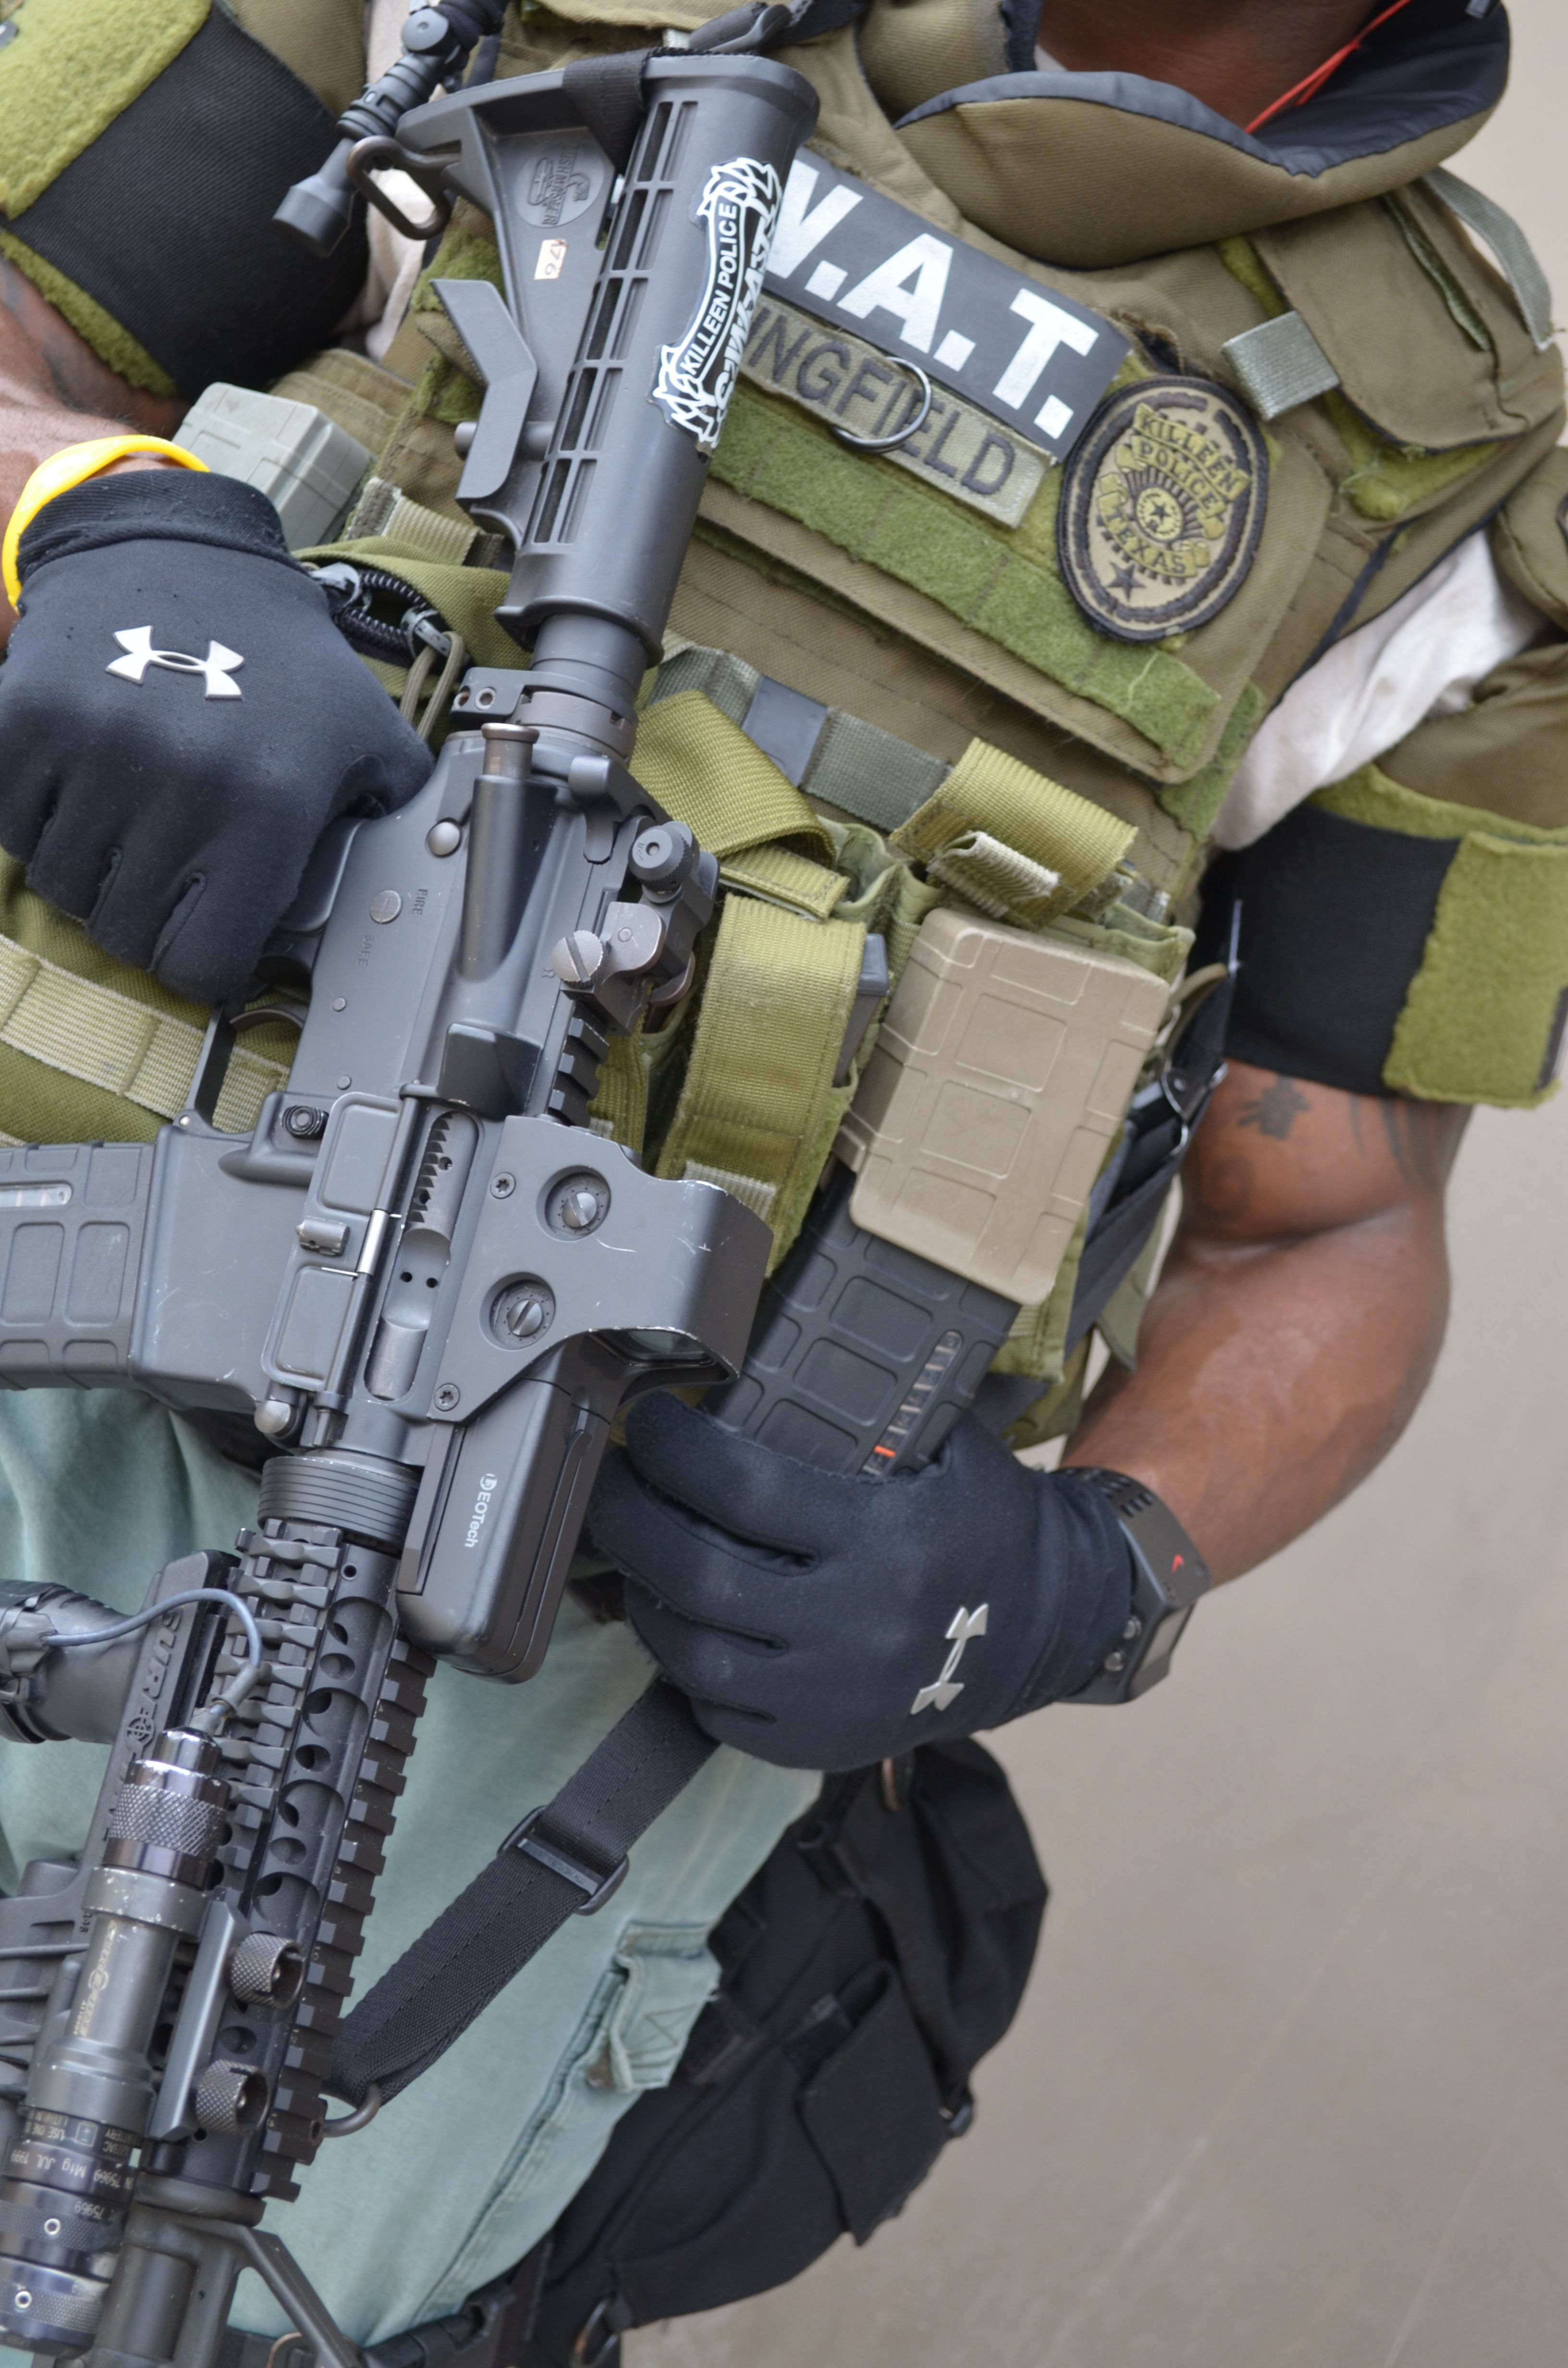 full swat gear smashed - 736×1111